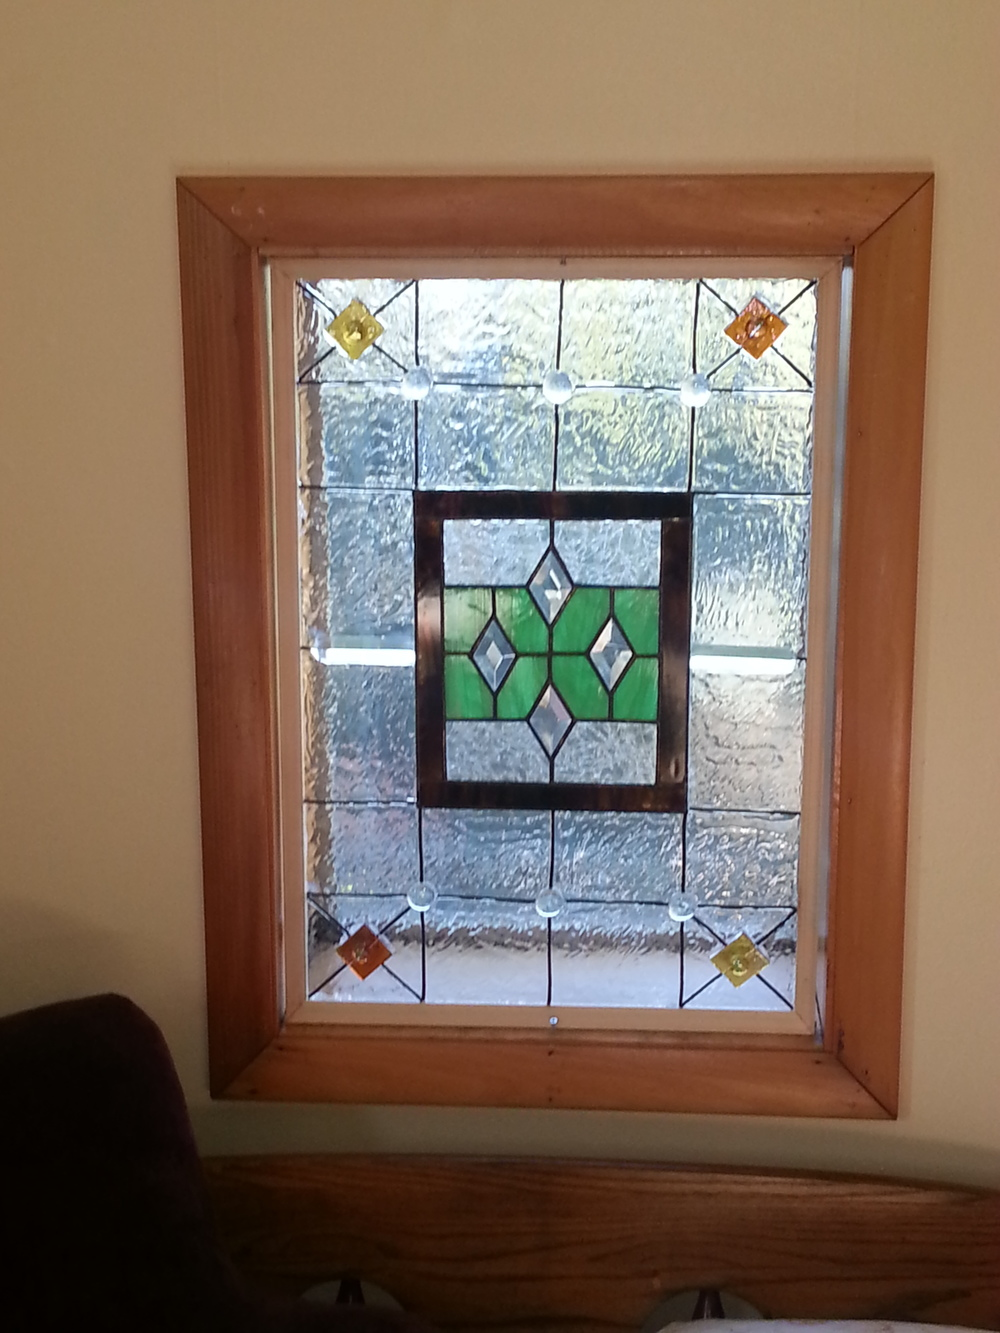 Two windows with real stained glass pieces by Jill Frederick, further embellished with glass pieces and paint.